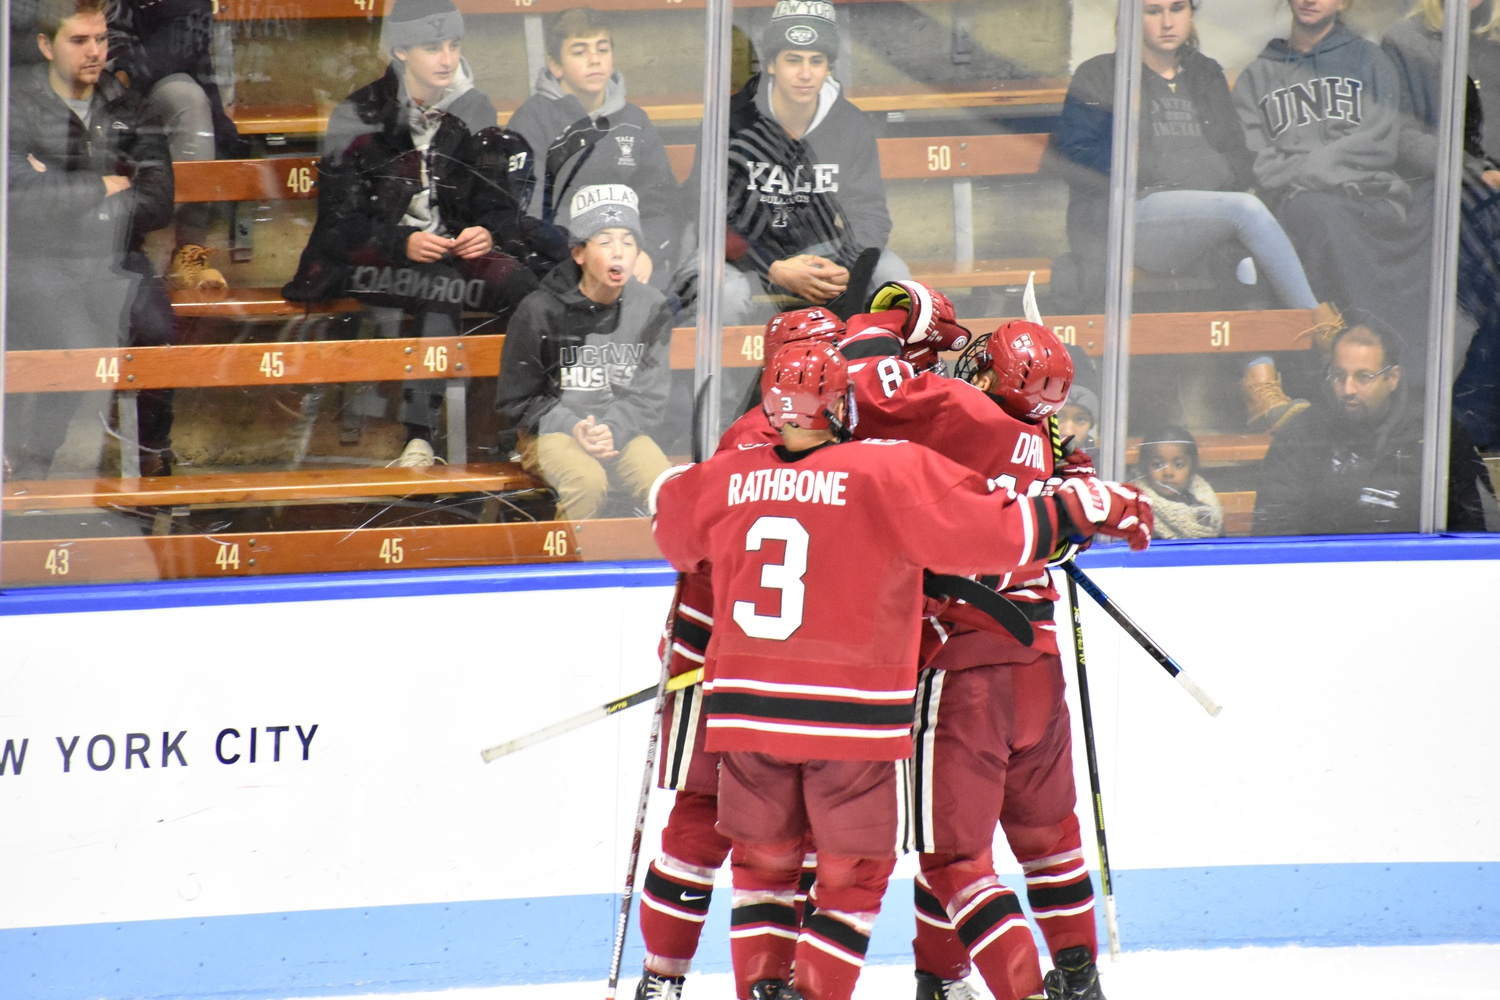 After several high-scoring contests, the Crimson leads the country in goals per game played (5.40) this year.